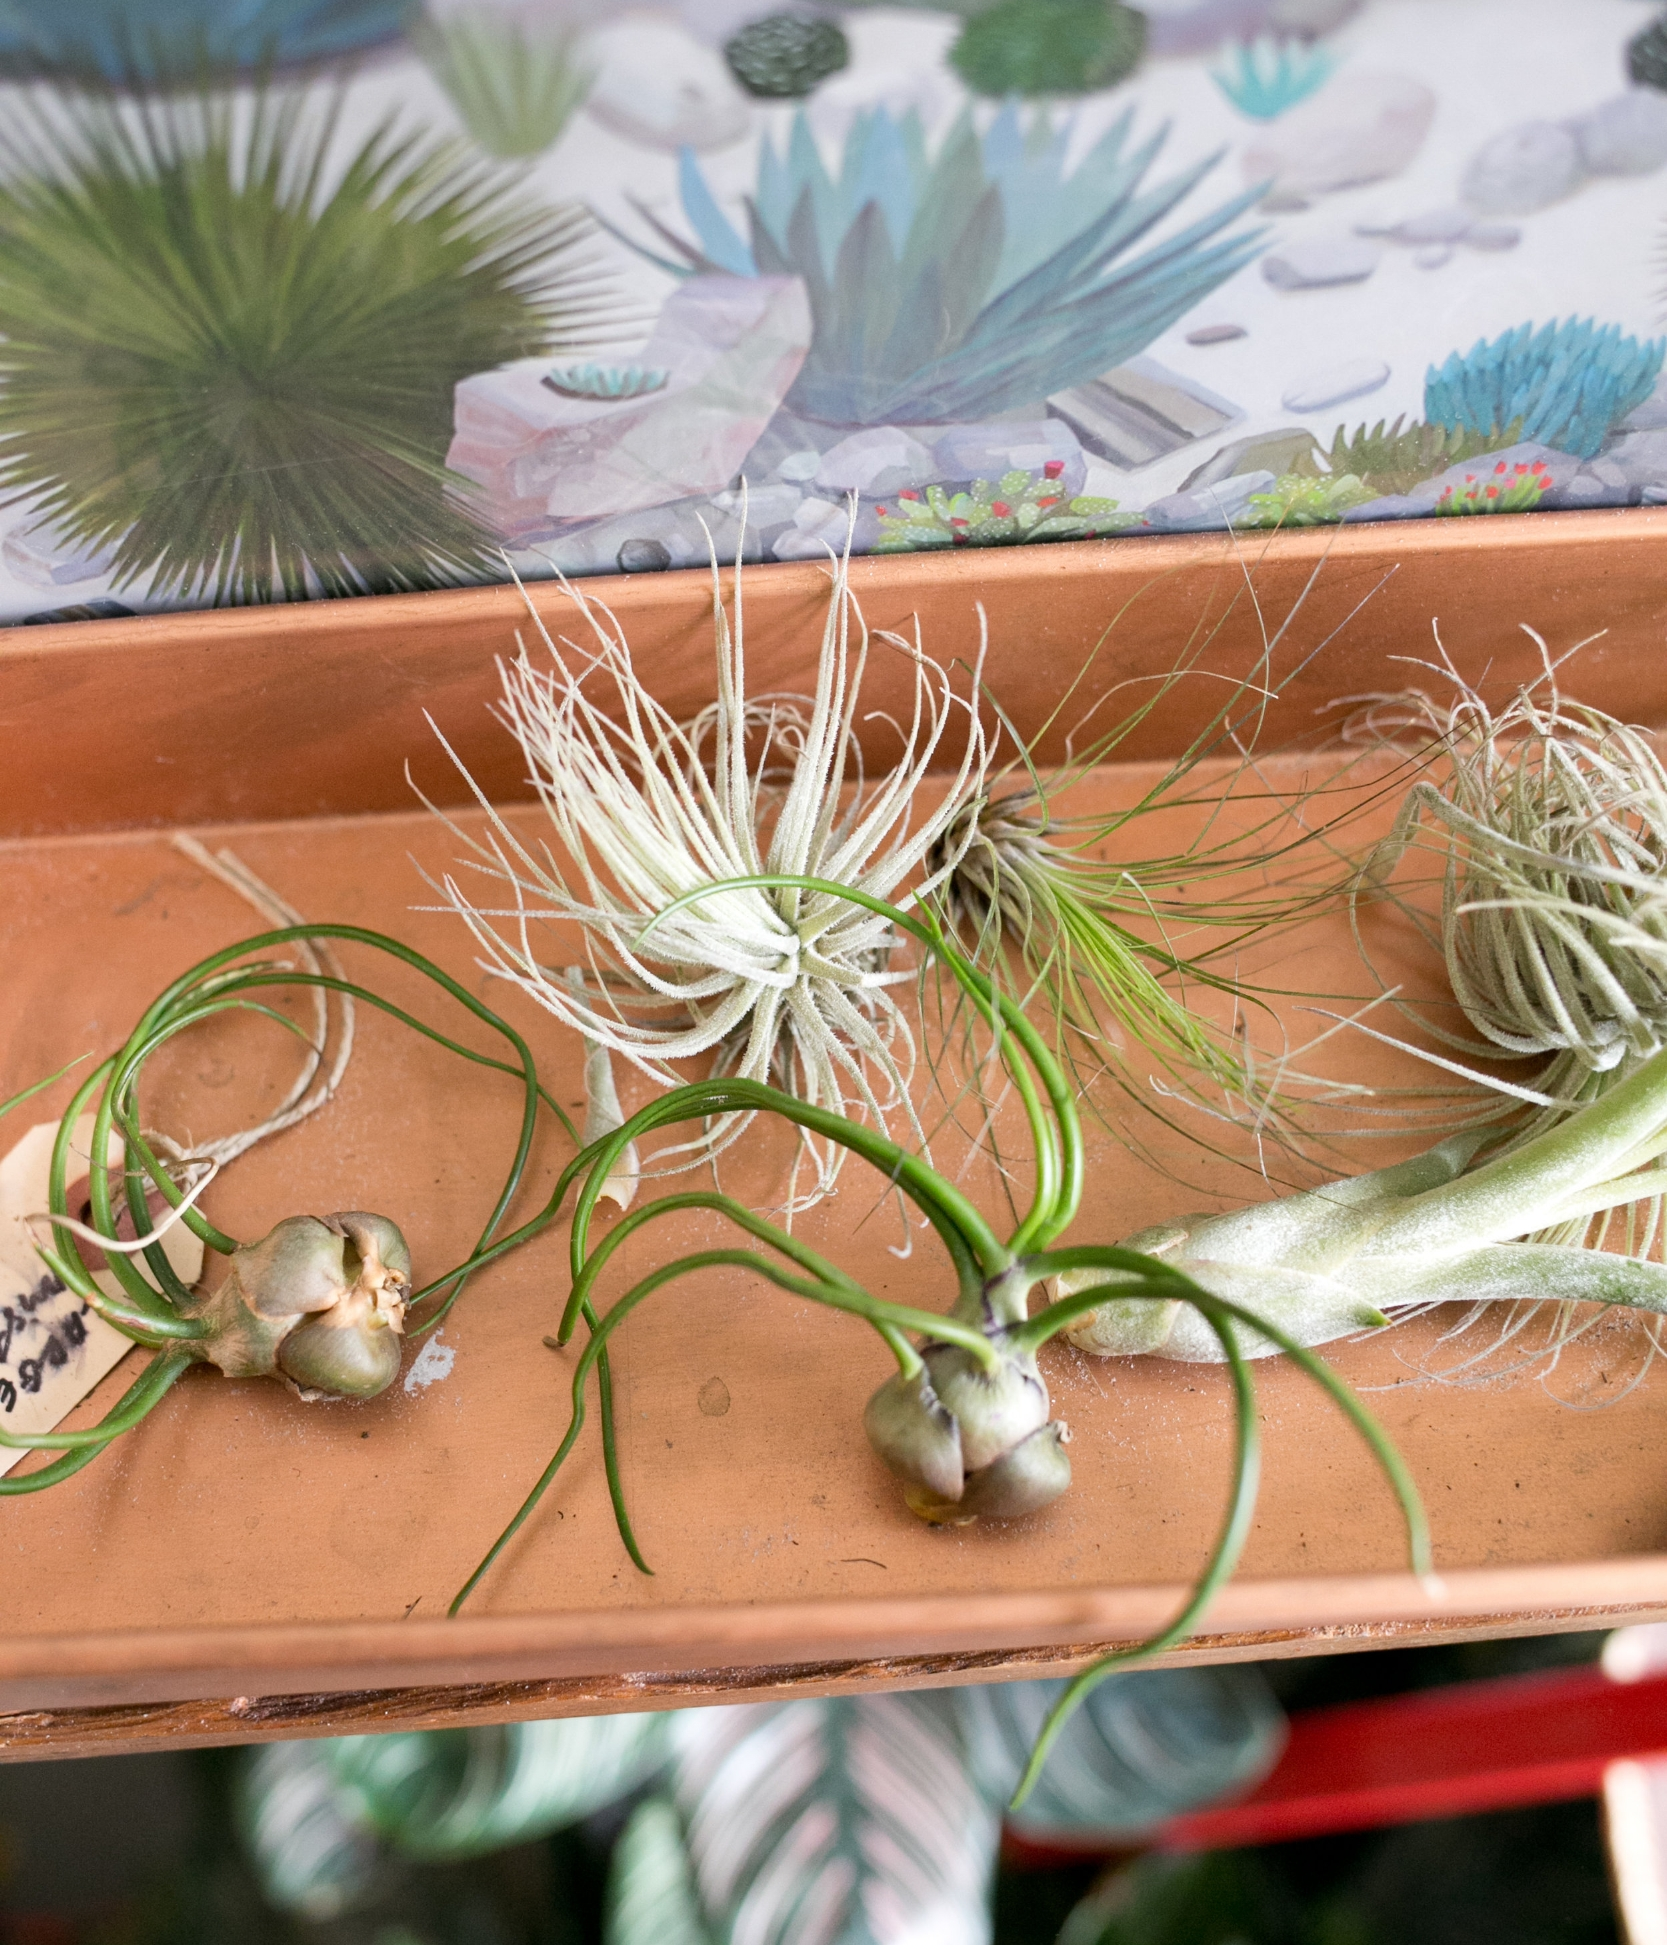 Commonly called airplants, the scientific name for many airplants begins with   Tillandsia , the name of their taxonomic genus.